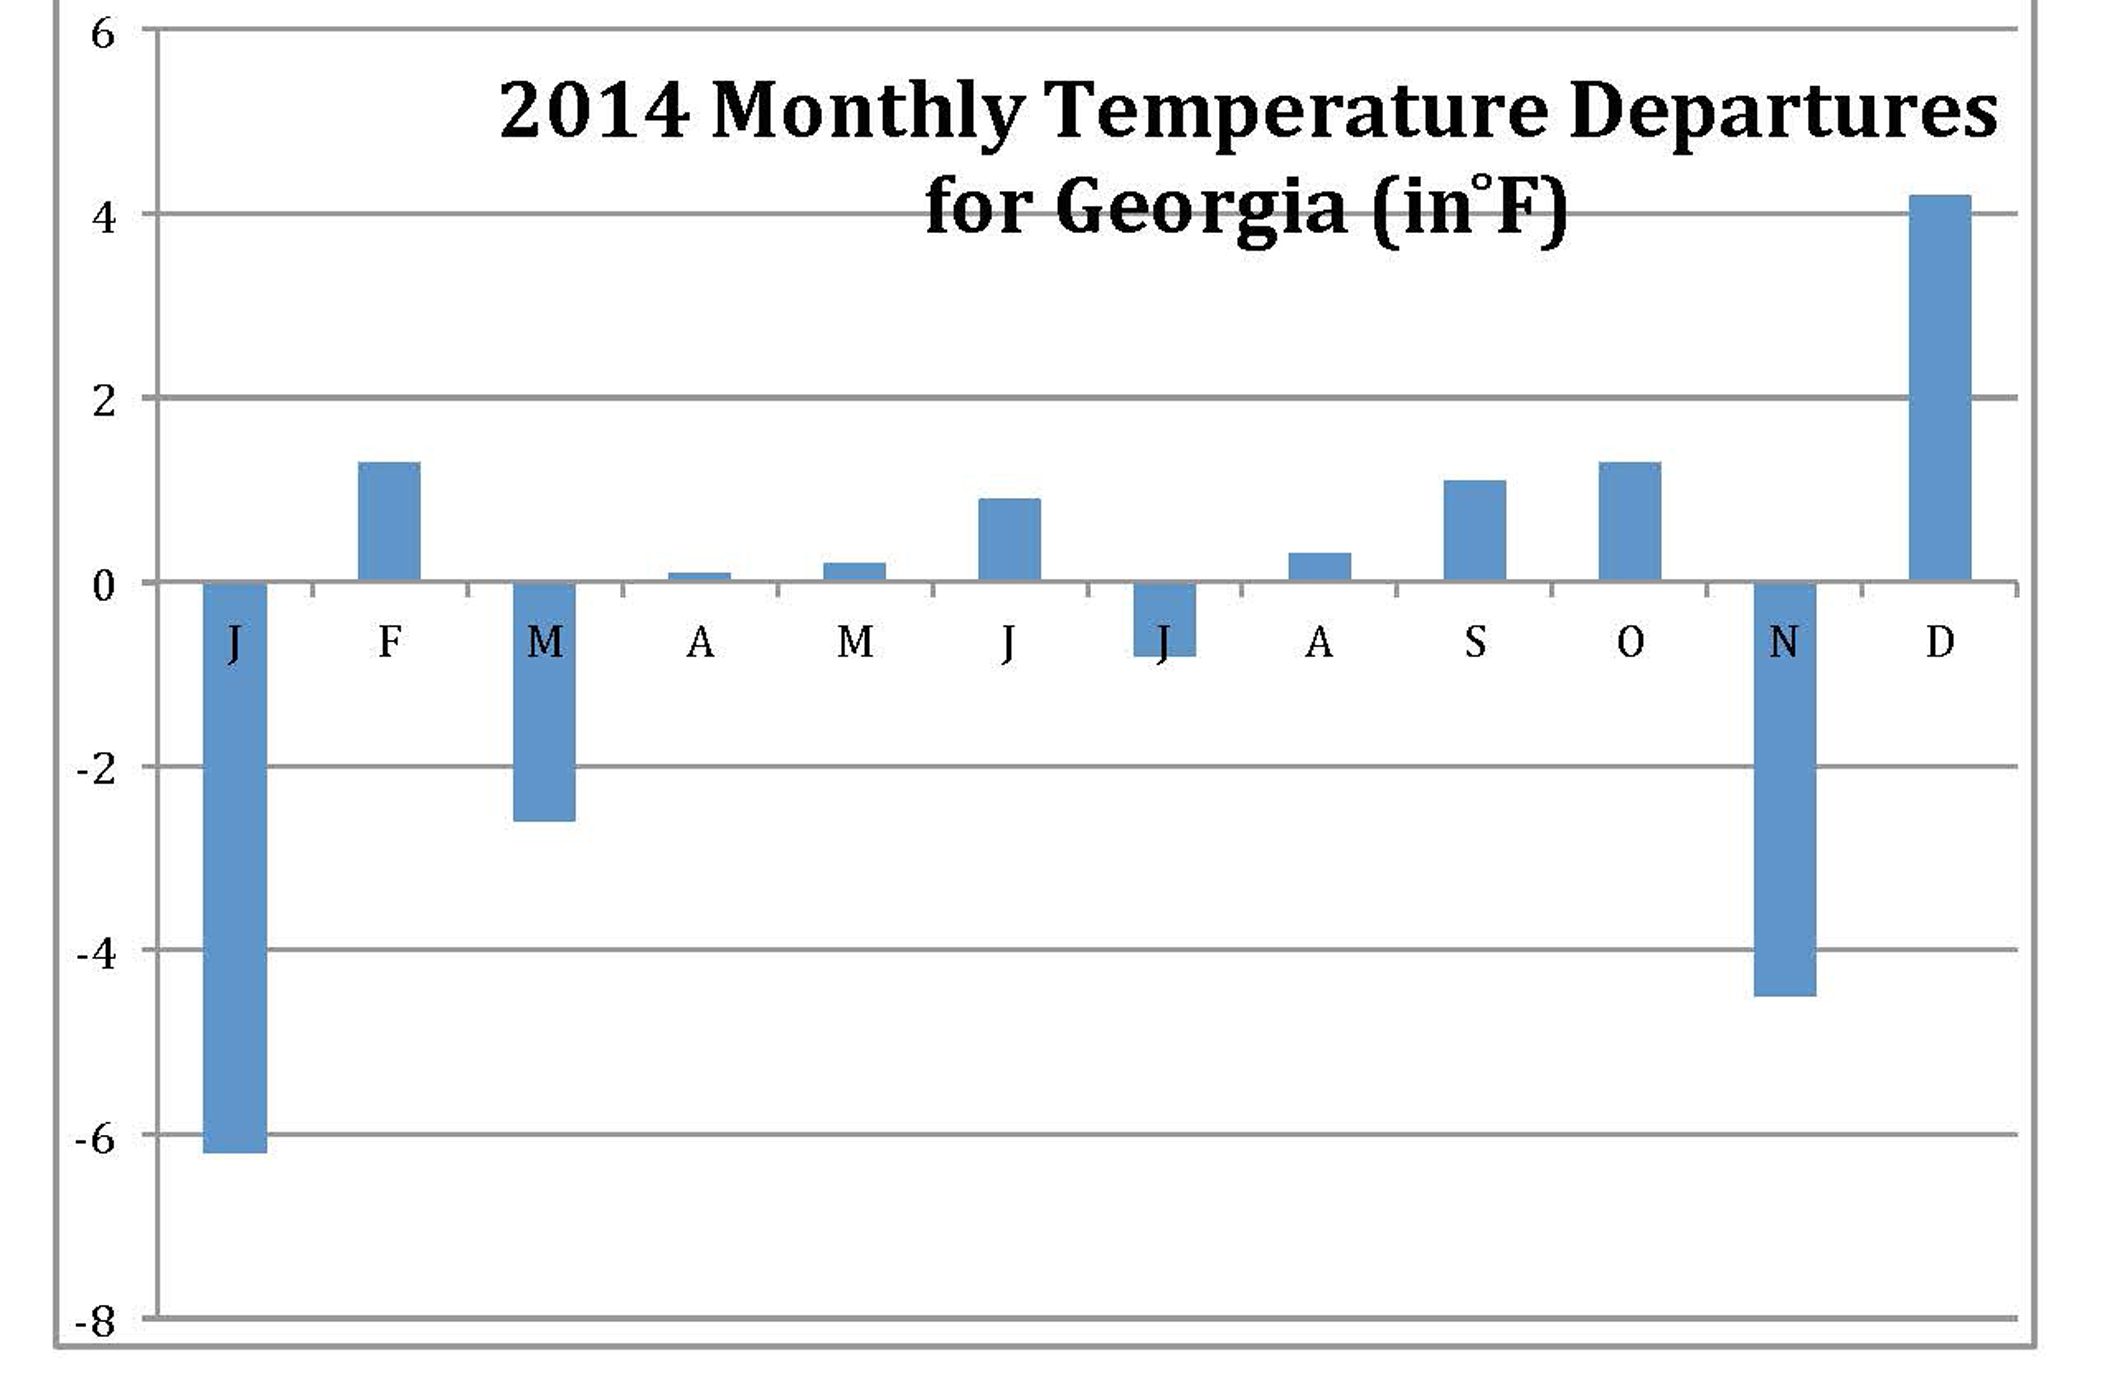 Monthly temperature departures from the 1901-2000 base period (Data source: National Climatic Data Center)